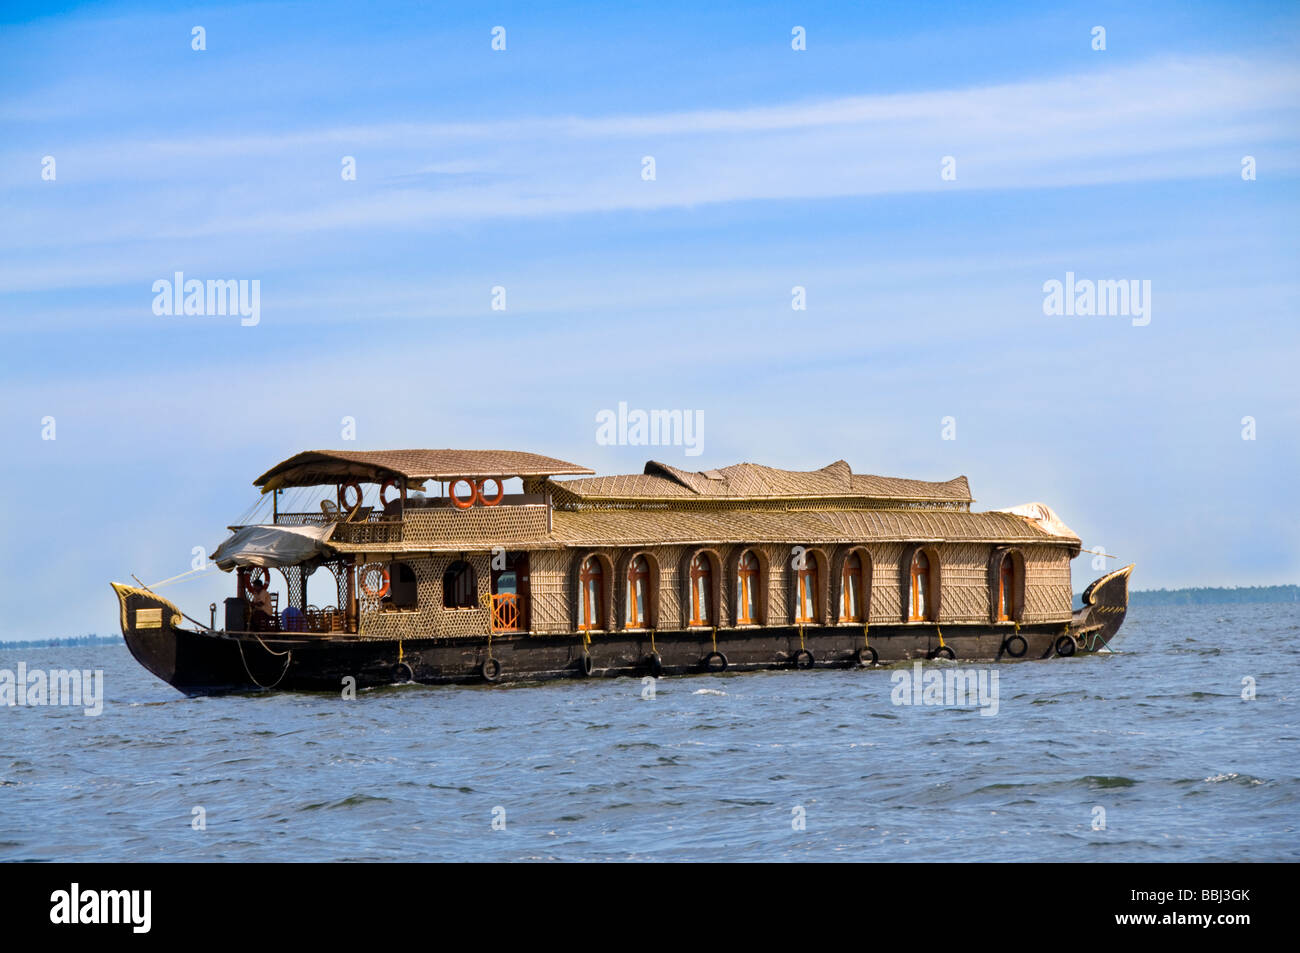 Kerala house boat or Kettuvallam houseboat - Stock Image